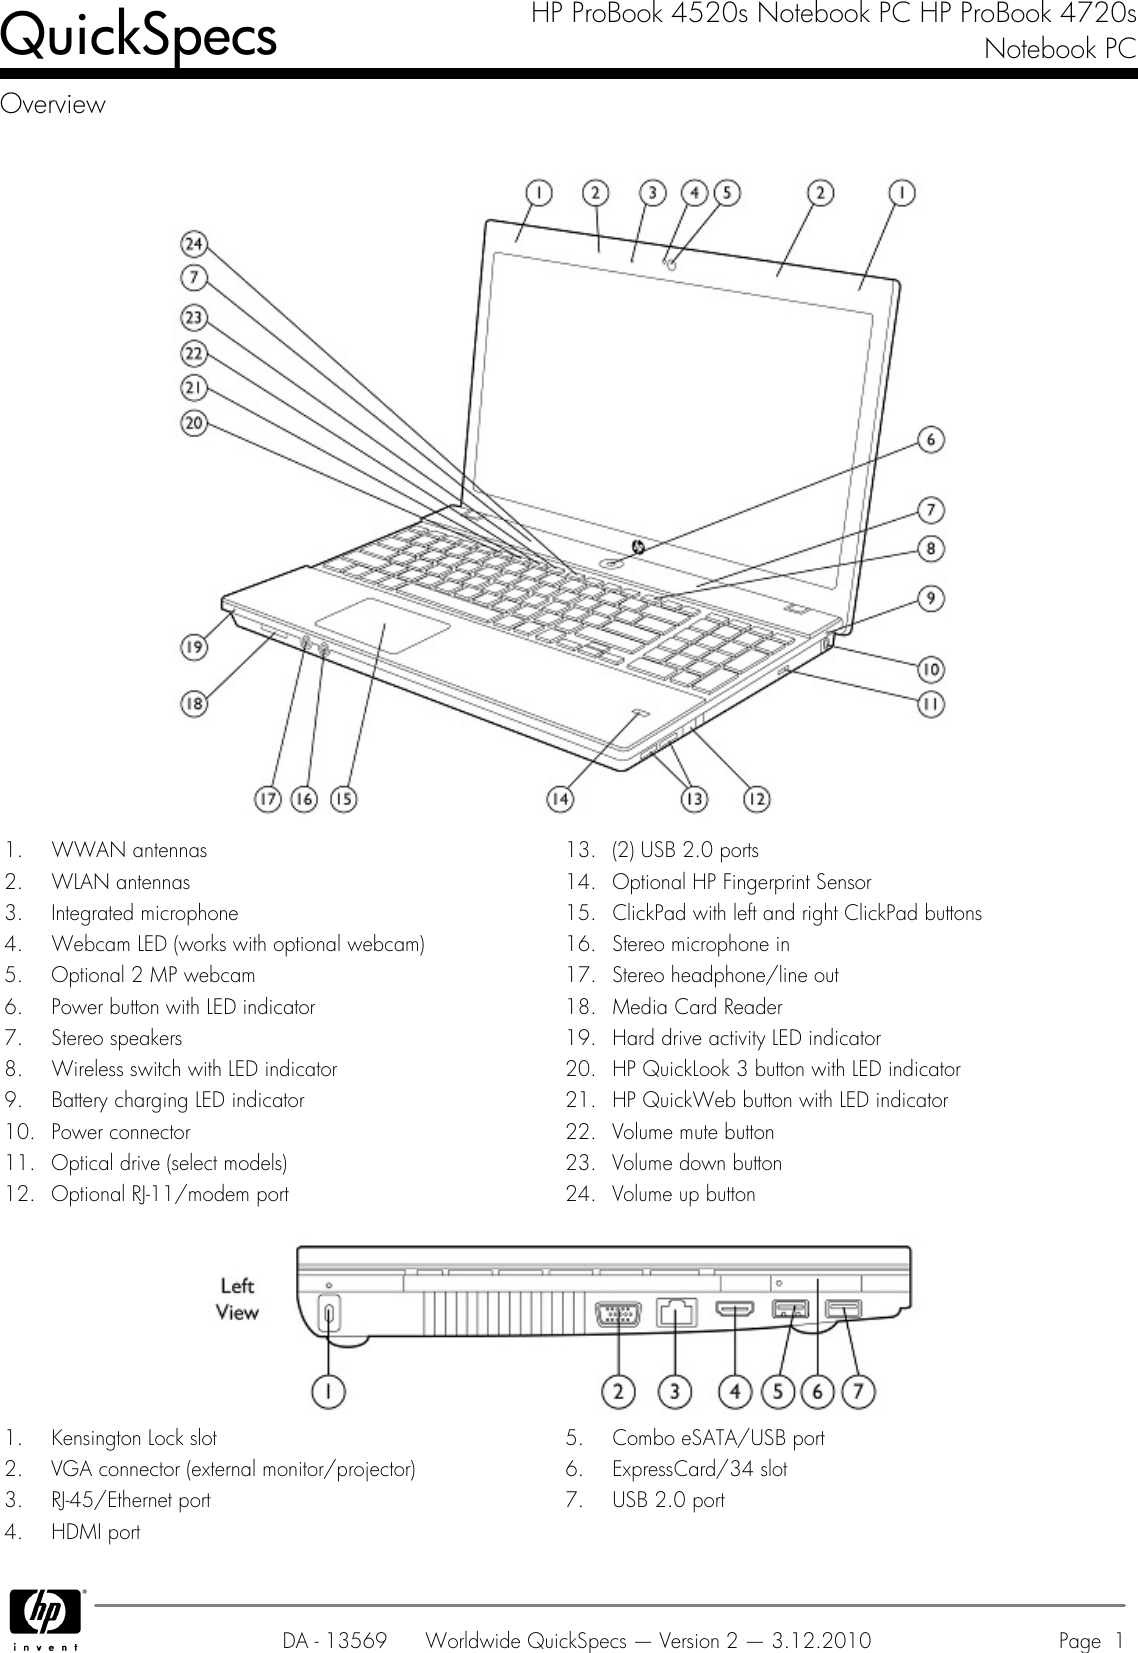 Hp Probook 4720S Users Manual 4520s Notebook PC